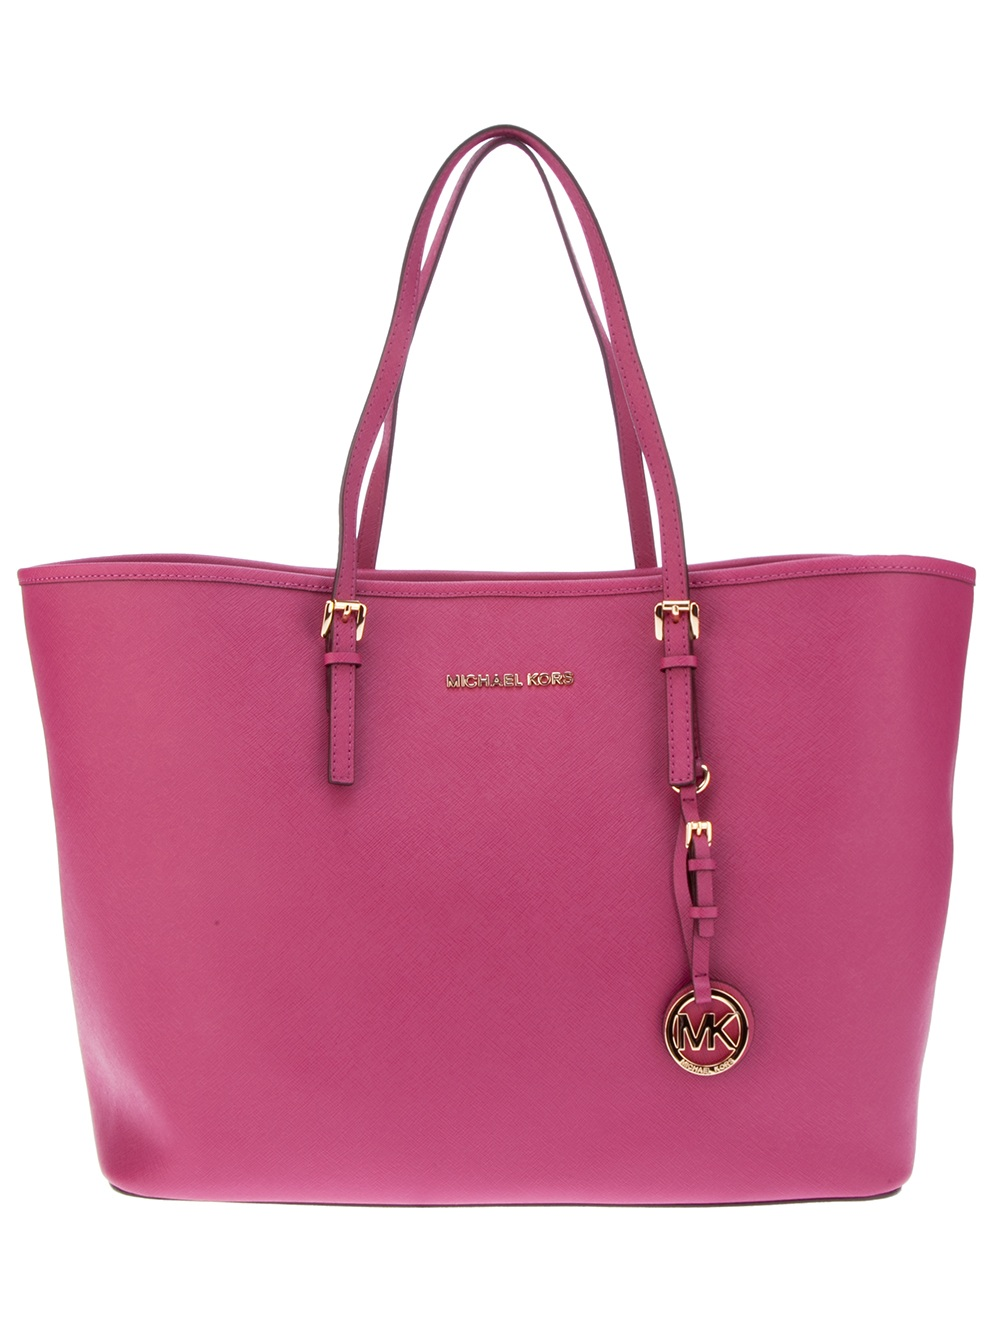 michael kors leather shopper tote in pink lyst. Black Bedroom Furniture Sets. Home Design Ideas